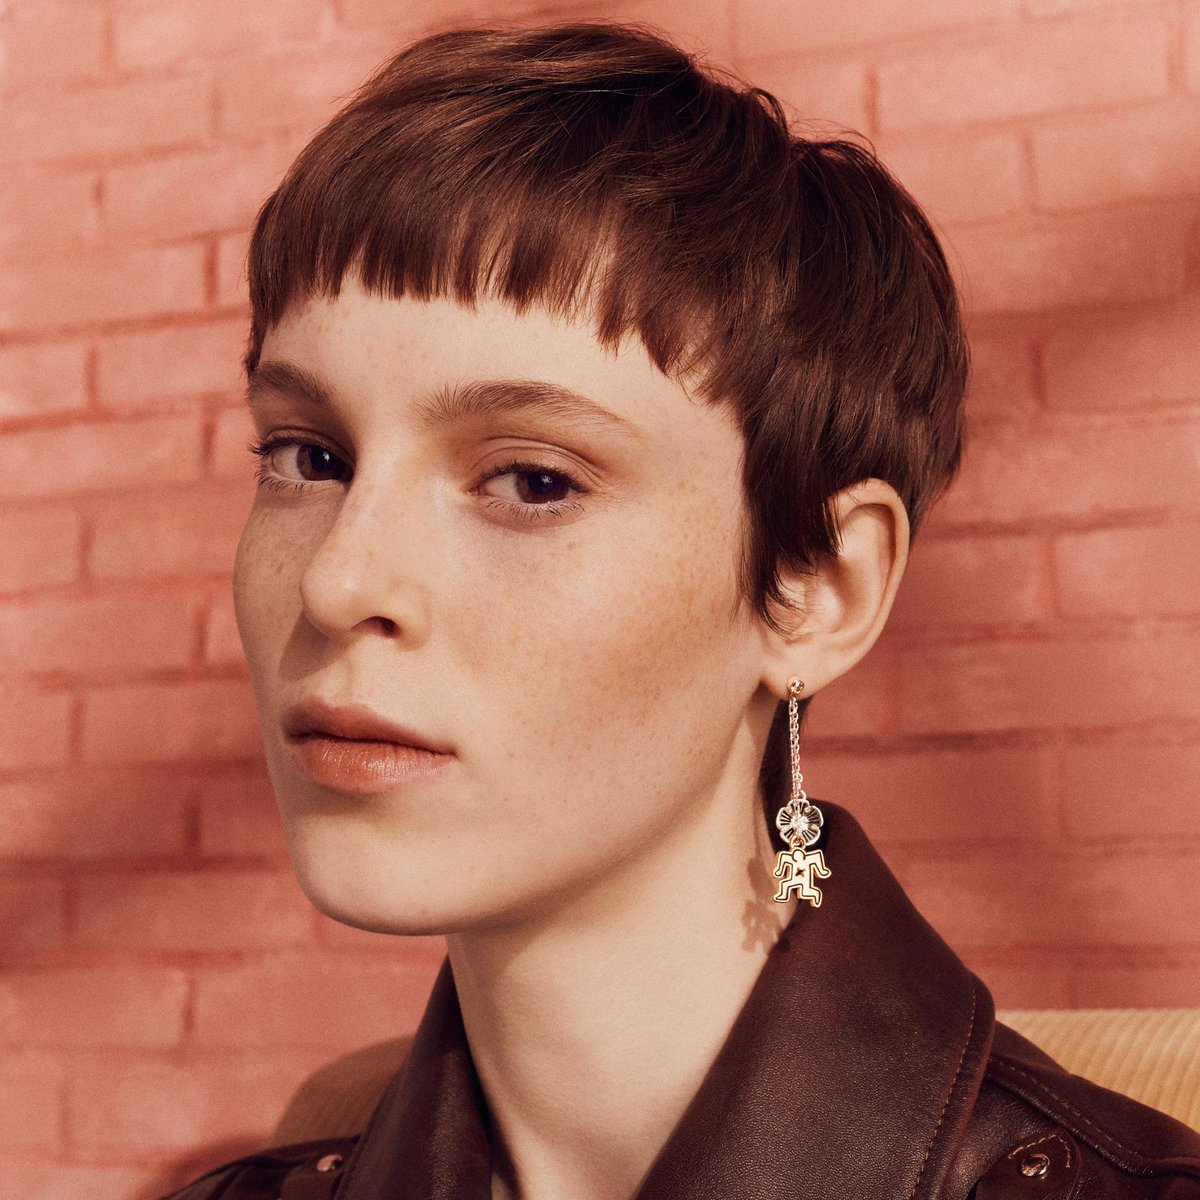 Delicate Tea Roses mingle with #KeithHaring characters in pair of earrings that not only sparkle, but pop. #CoachxKeithHAring #CoachNY  https://t.co/qlsm83294f